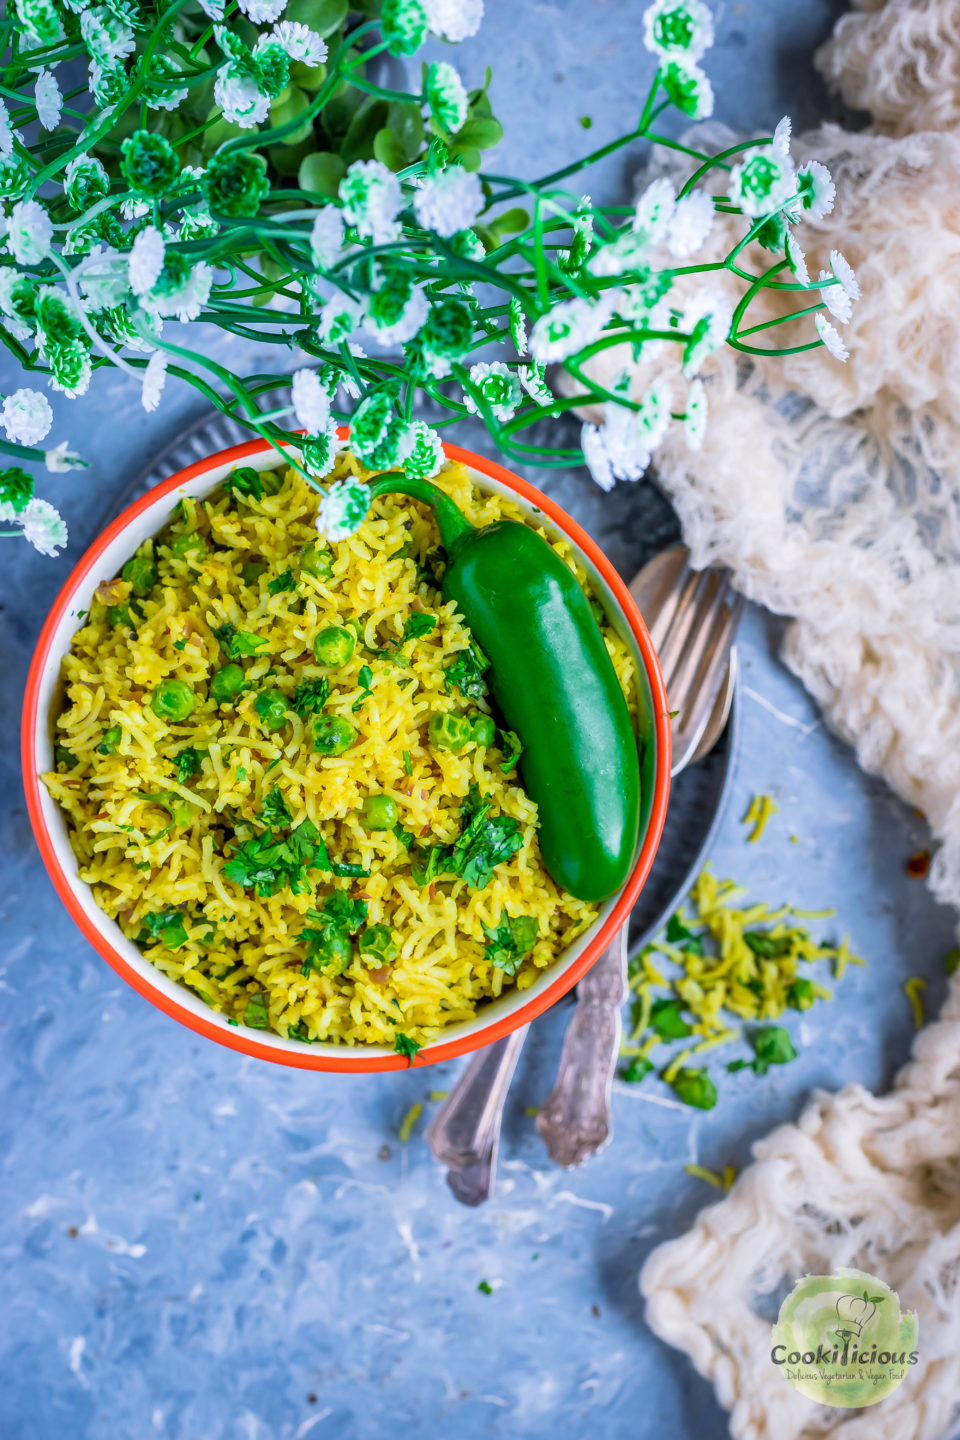 Green Peas Pulao in a bowl with a jalapeno on top and cutlery on the side